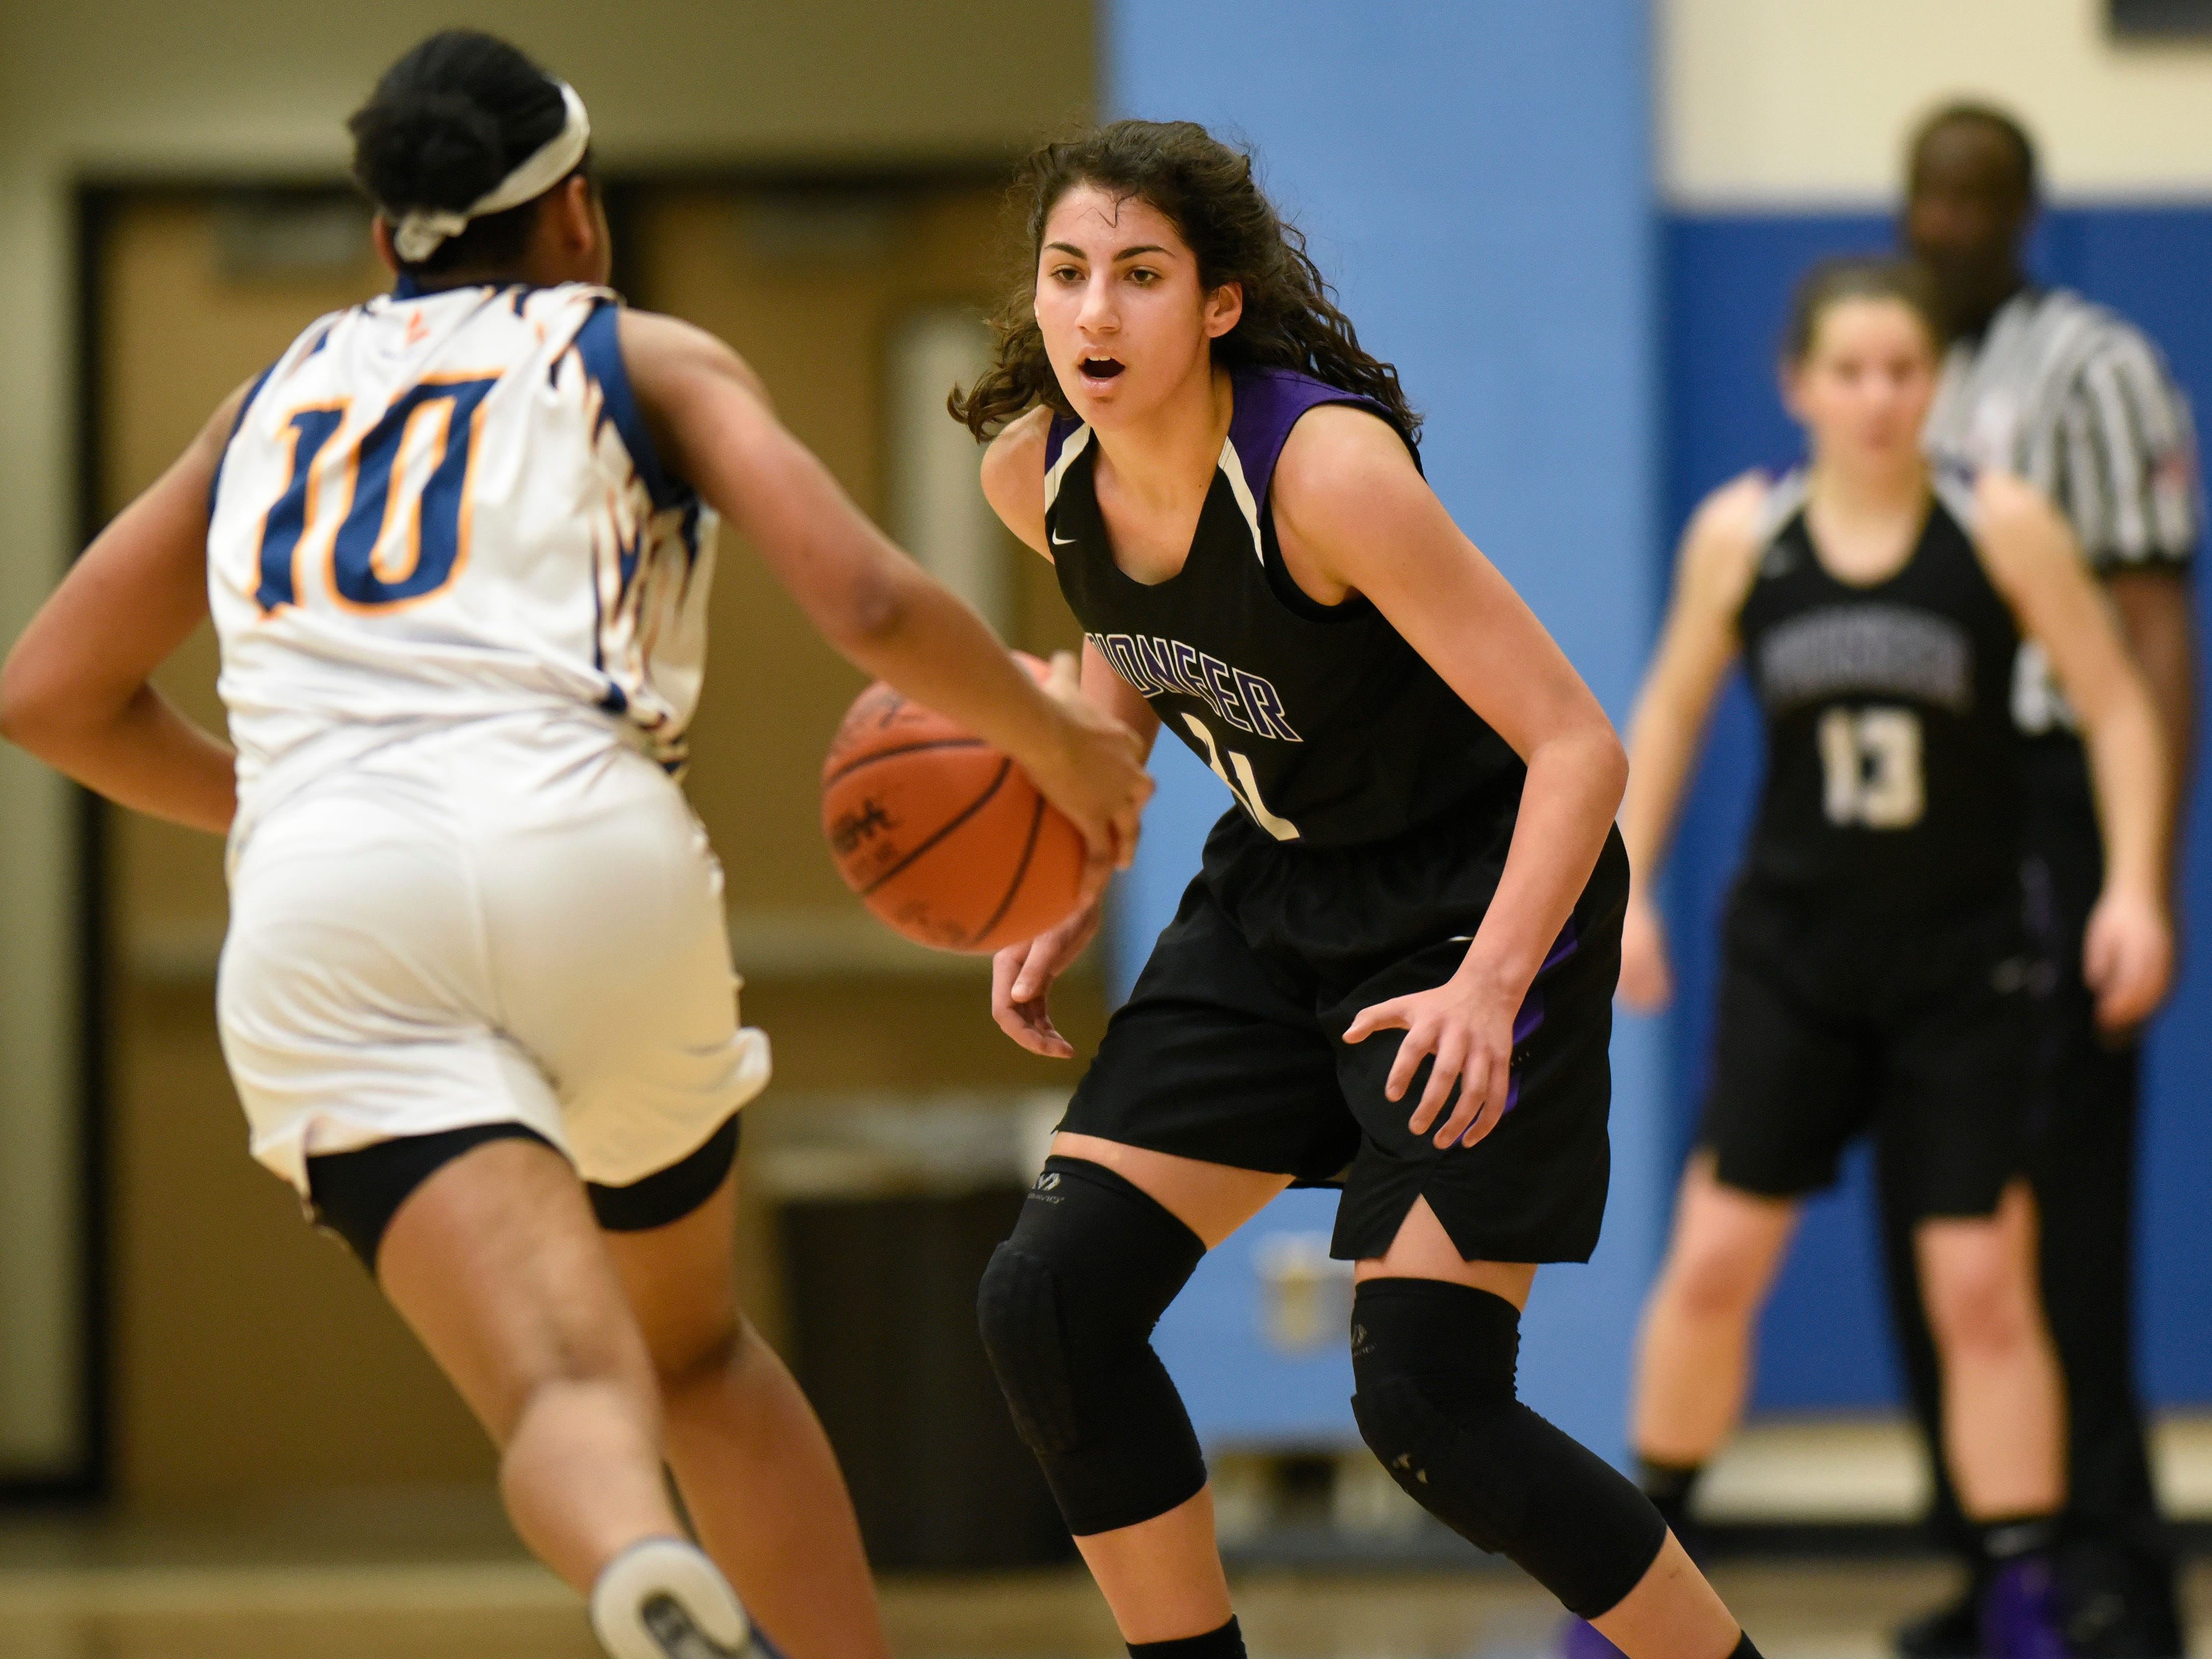 Wayne Memorial guard Jeanae Terry drives to the basket as she is guarded by Ann Arbor Pioneer forward Corine Burgard in the first quarter.